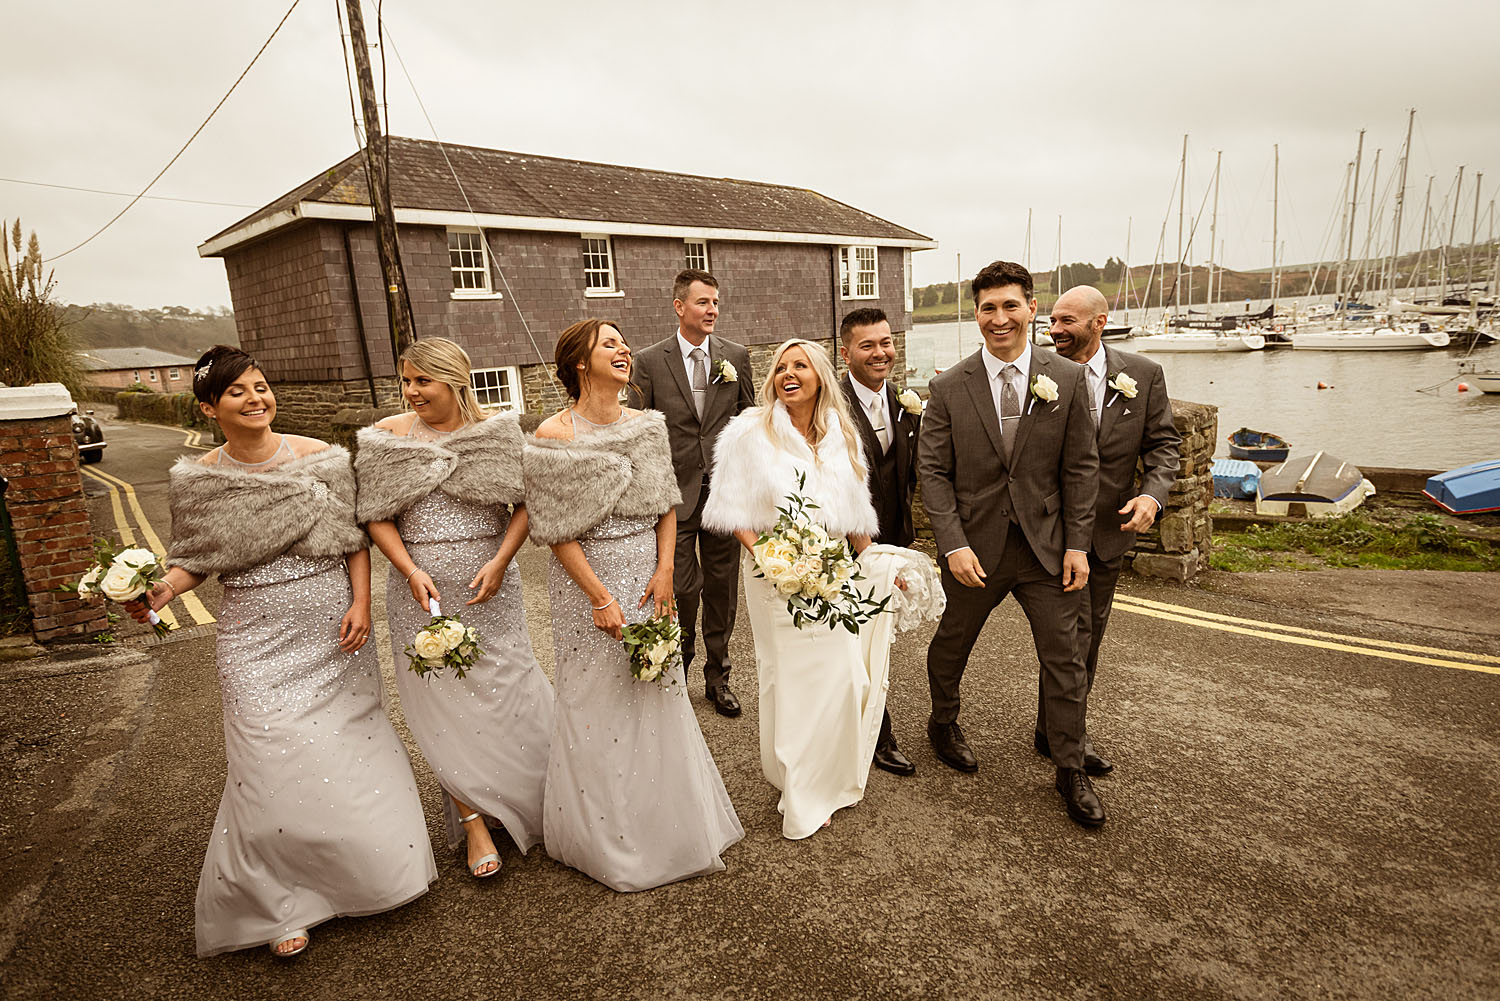 Kinsale Hotel and Spa Christmas Wedding